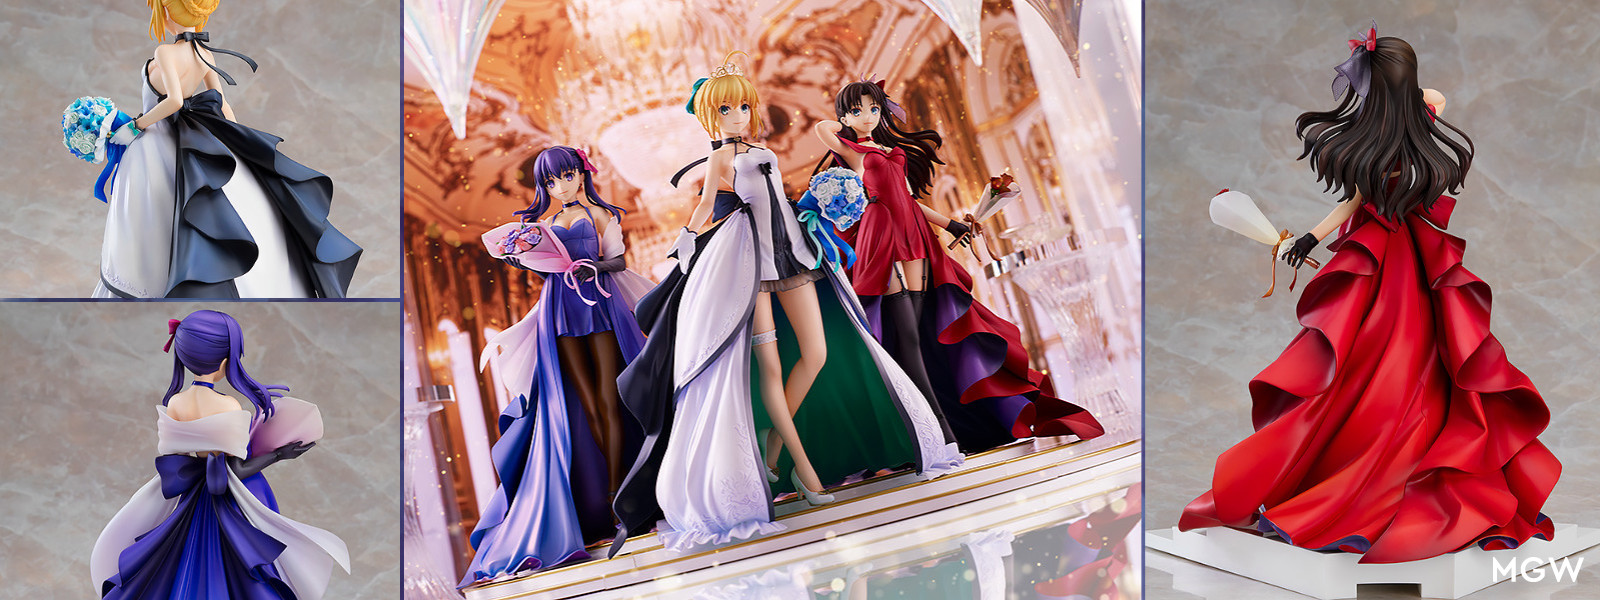 Saber, Rin Tohsaka and Sakura Matou 15th Celebration Dress Ver. Premium Box by Good Smile Company from Fate/stay night MGW Header